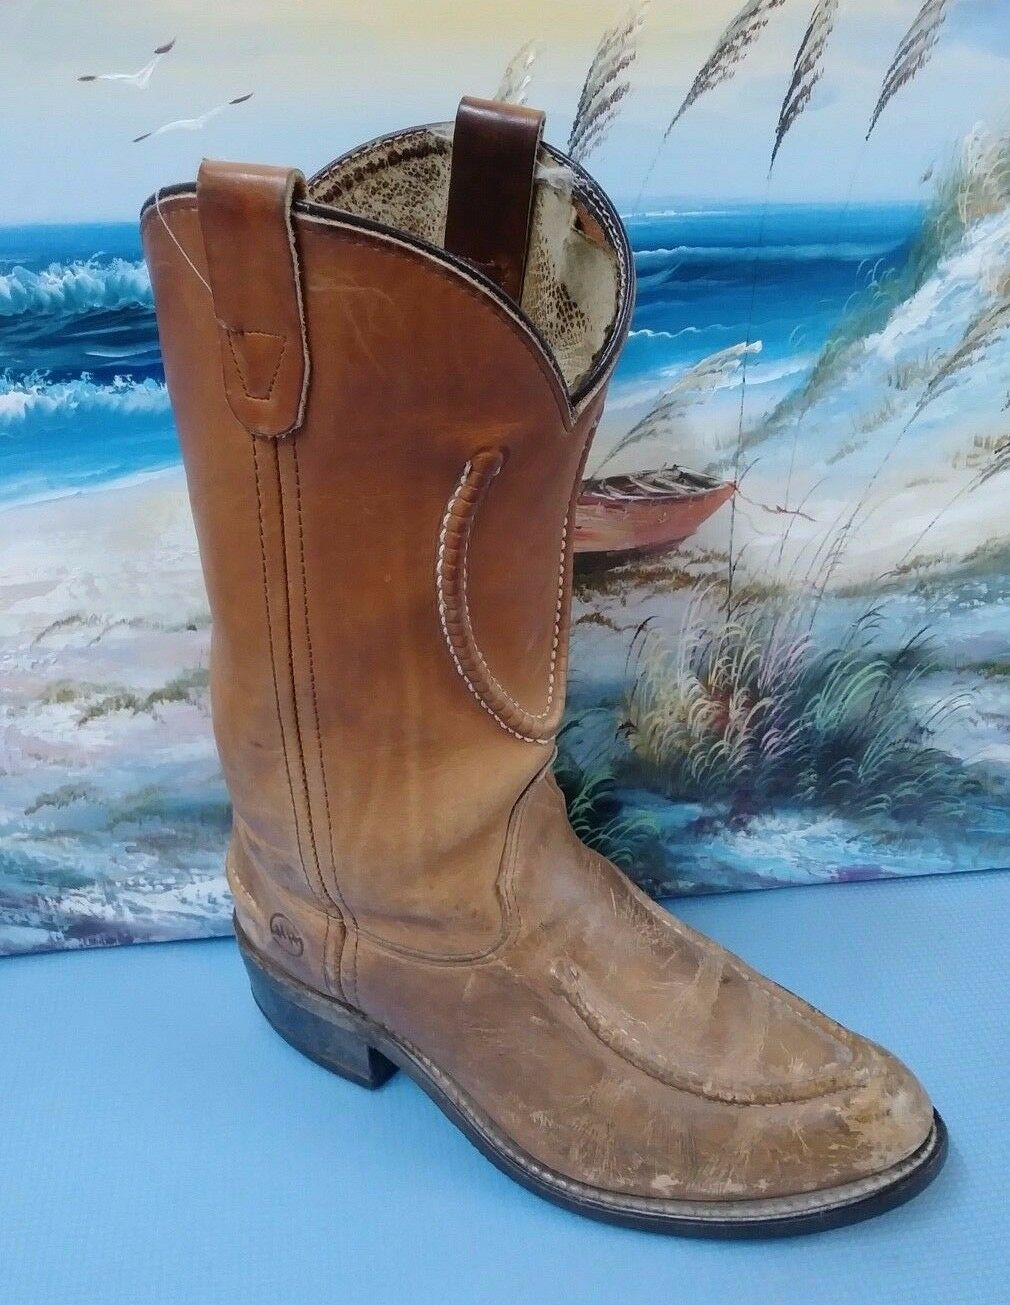 Double H 1608 Mens Size 8.5D Boots Moc Stitch Work Western